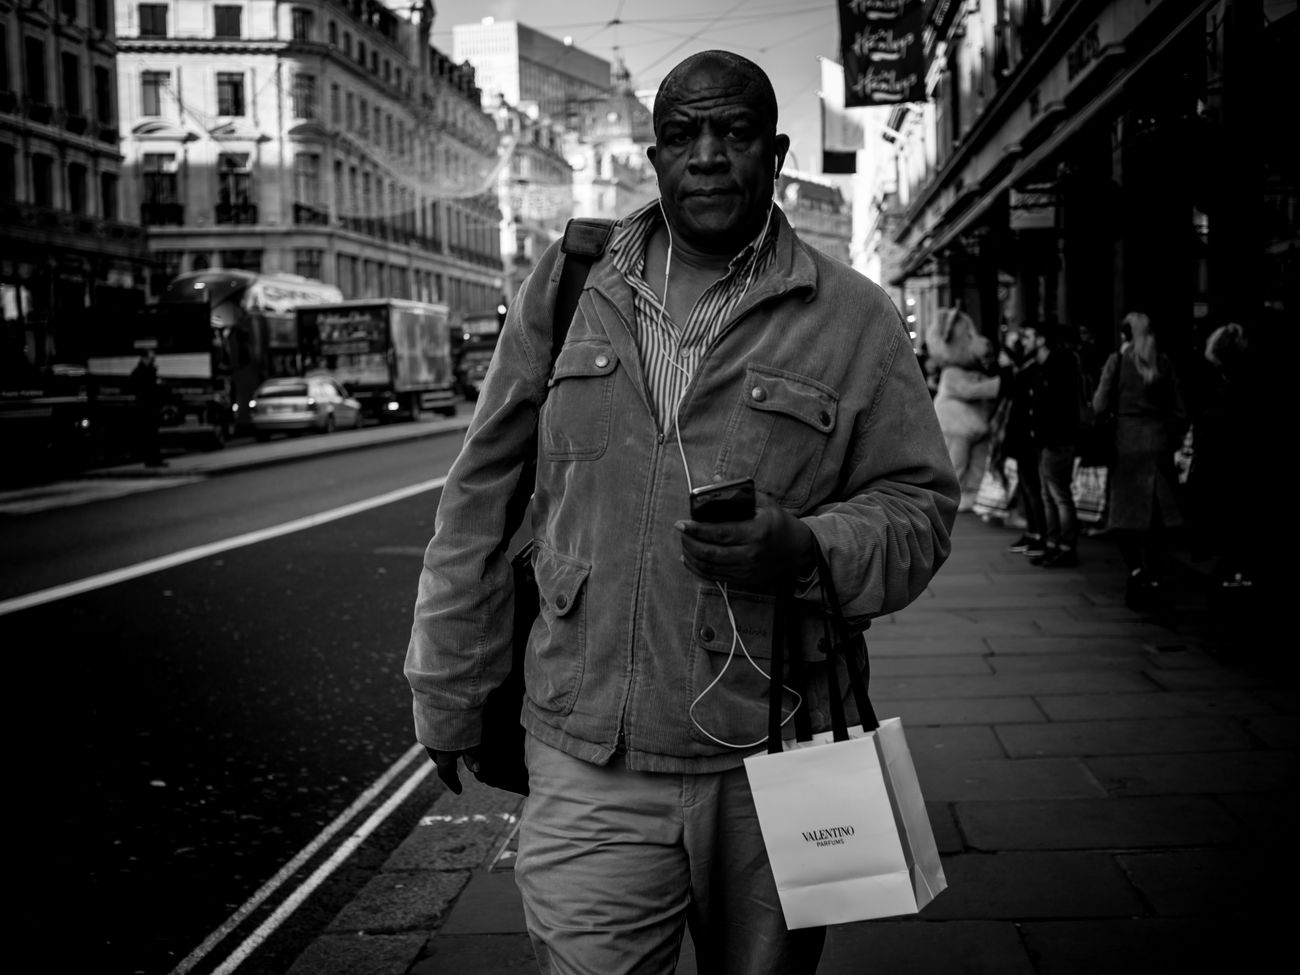 Shopper. One Man Only Only Men One Person Adults Only Men People Adult City Outdoors Rawstreets 50mm Maxgor.com Street Photography Candid Photo Peope Street Lifestyles Maxgor London Streetphotography_bw Monochrome Photography Blackandwhite Black And White Real People London Lifestyle